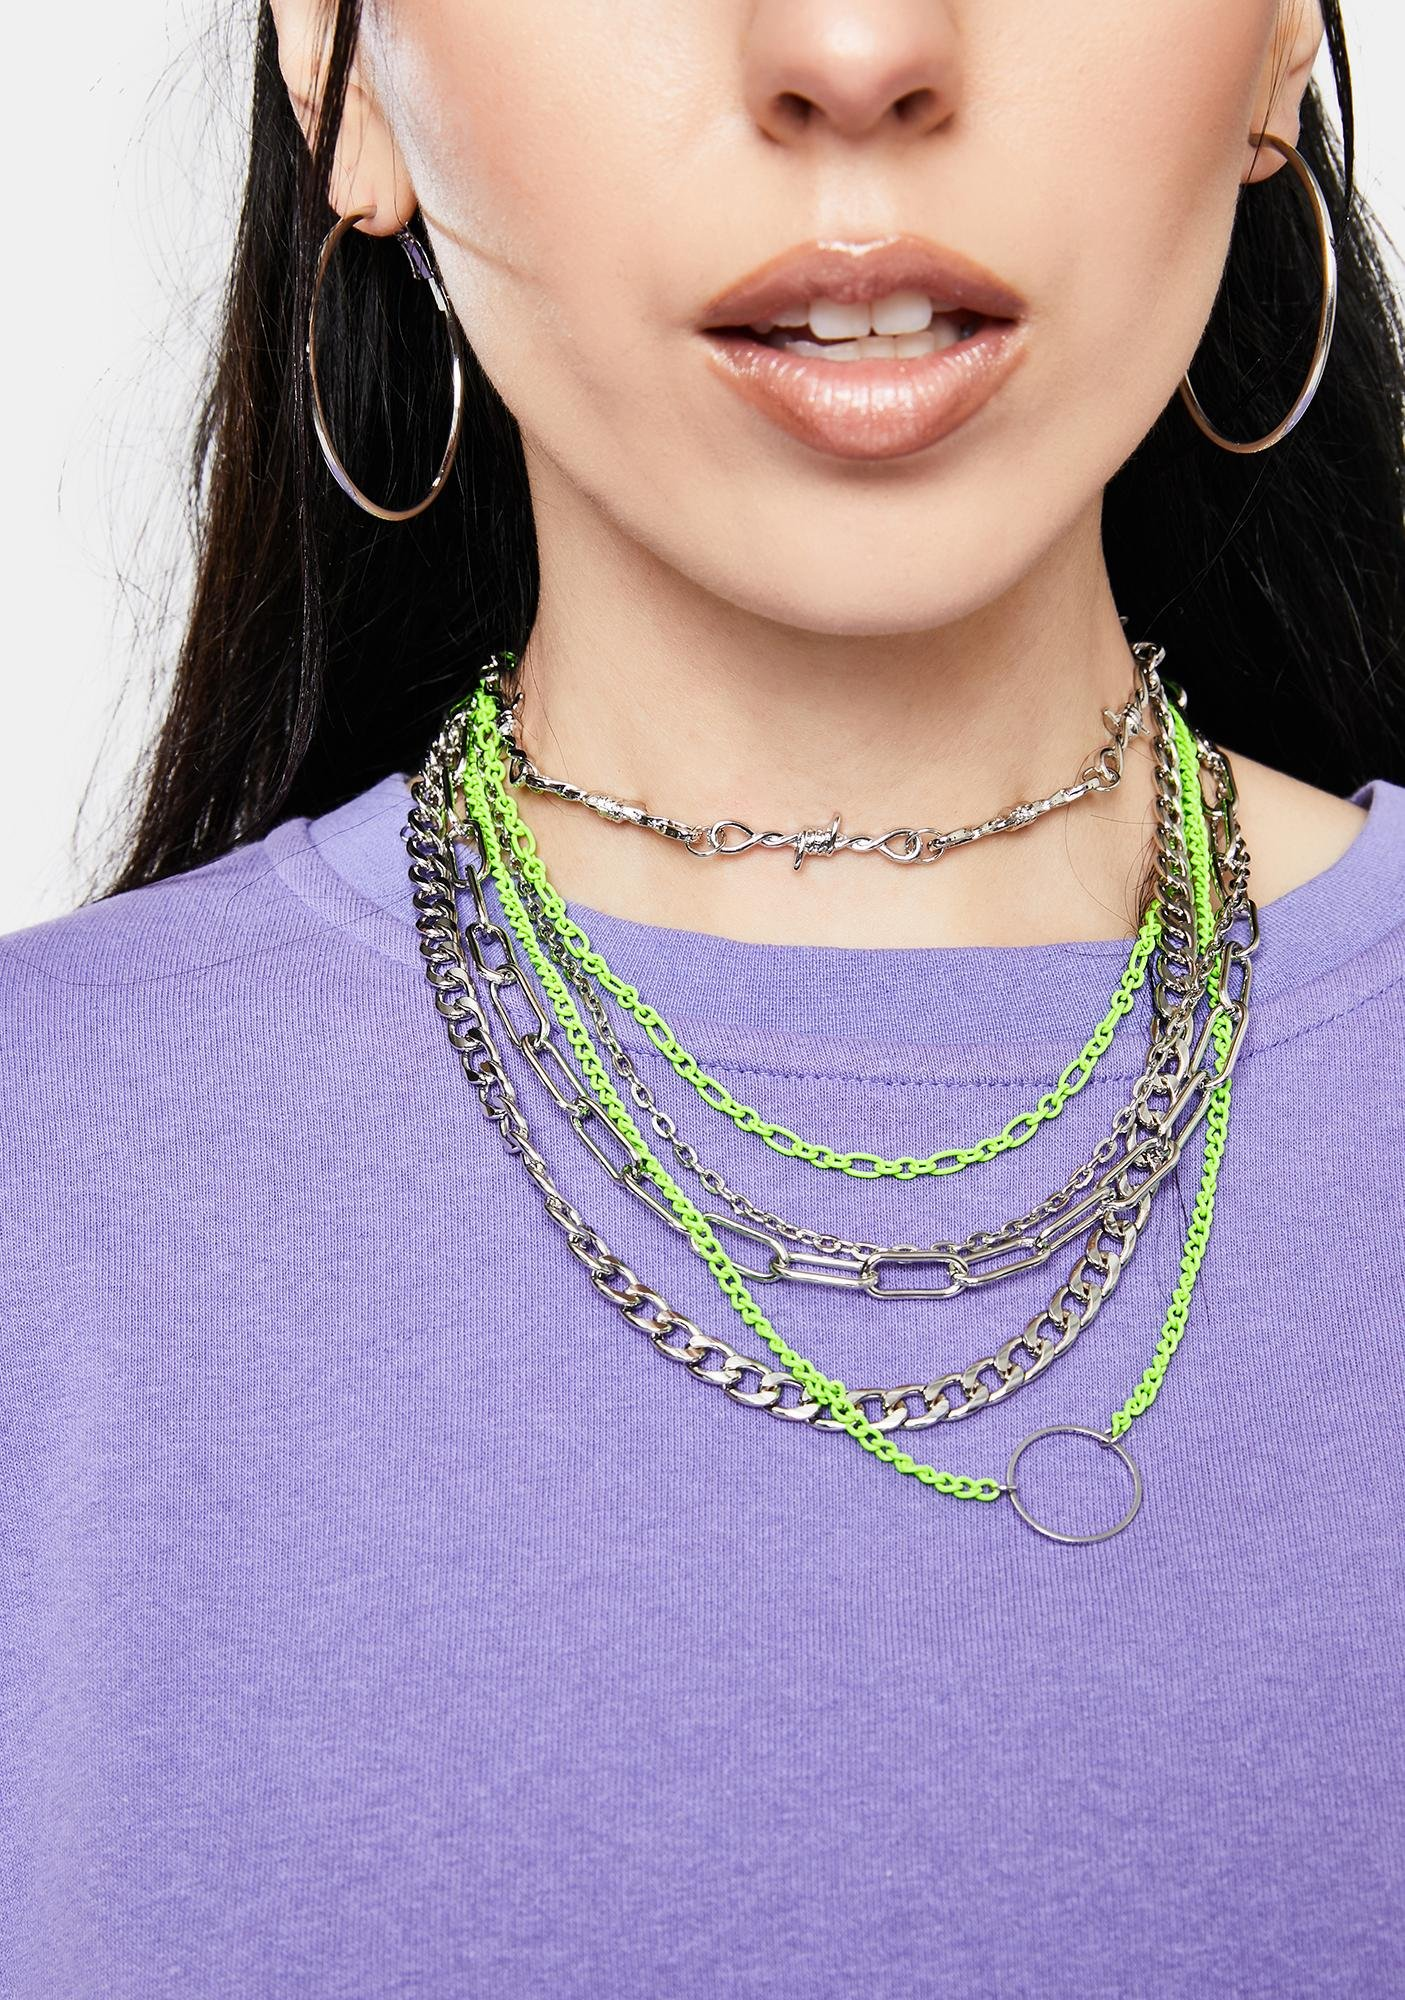 Do What I Want Layered Chain Necklace